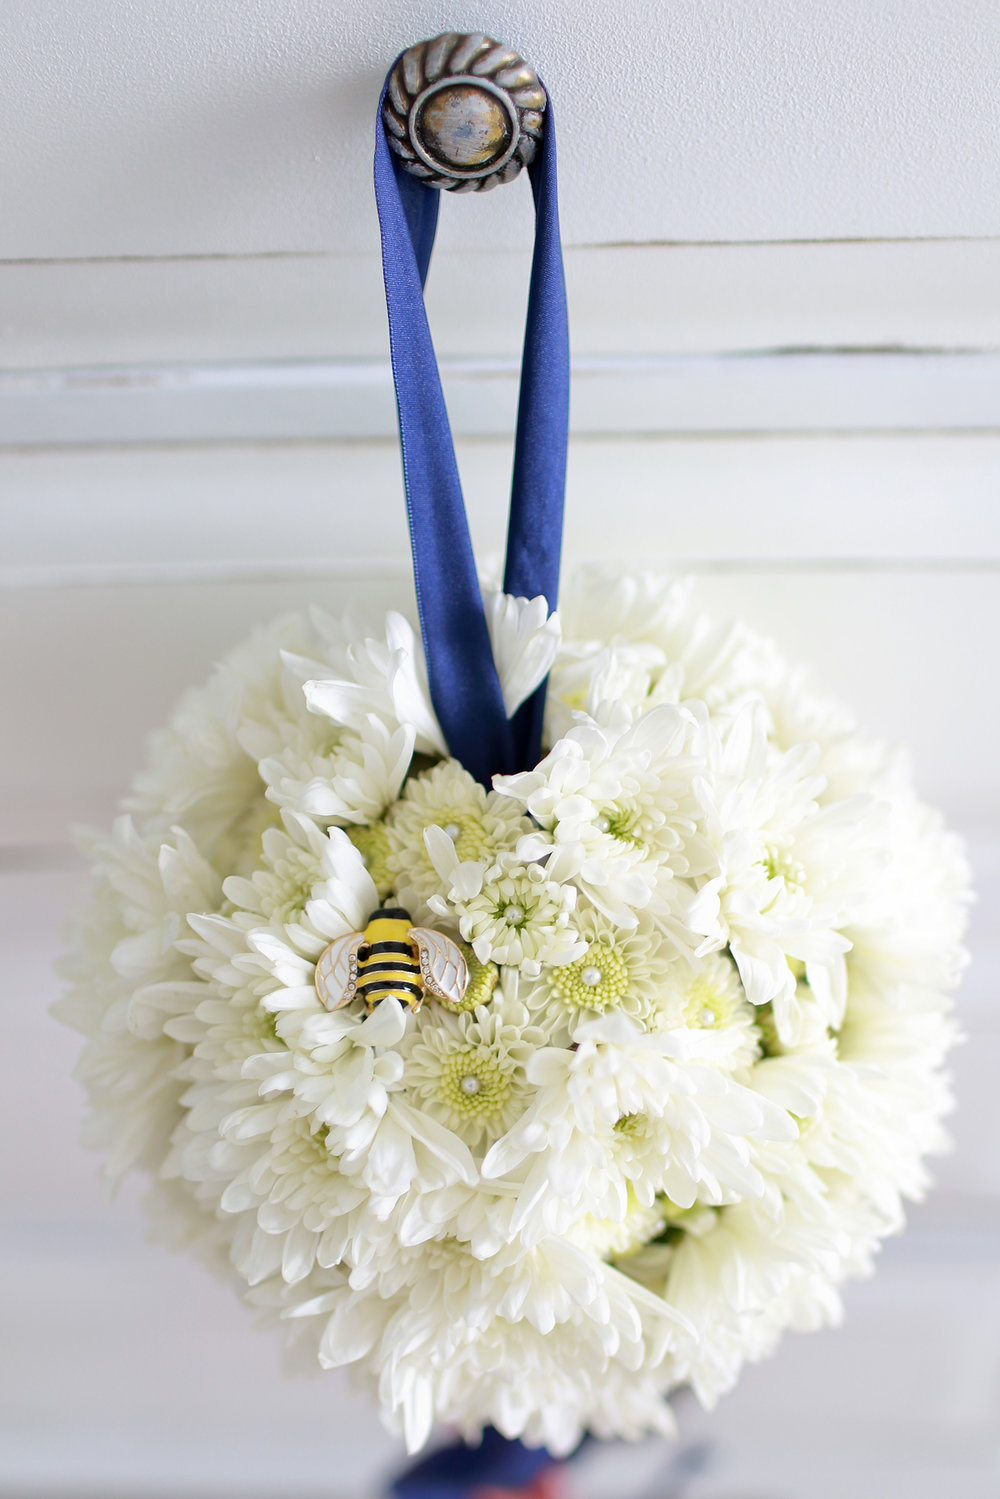 Kissing Ball Bee.jpg